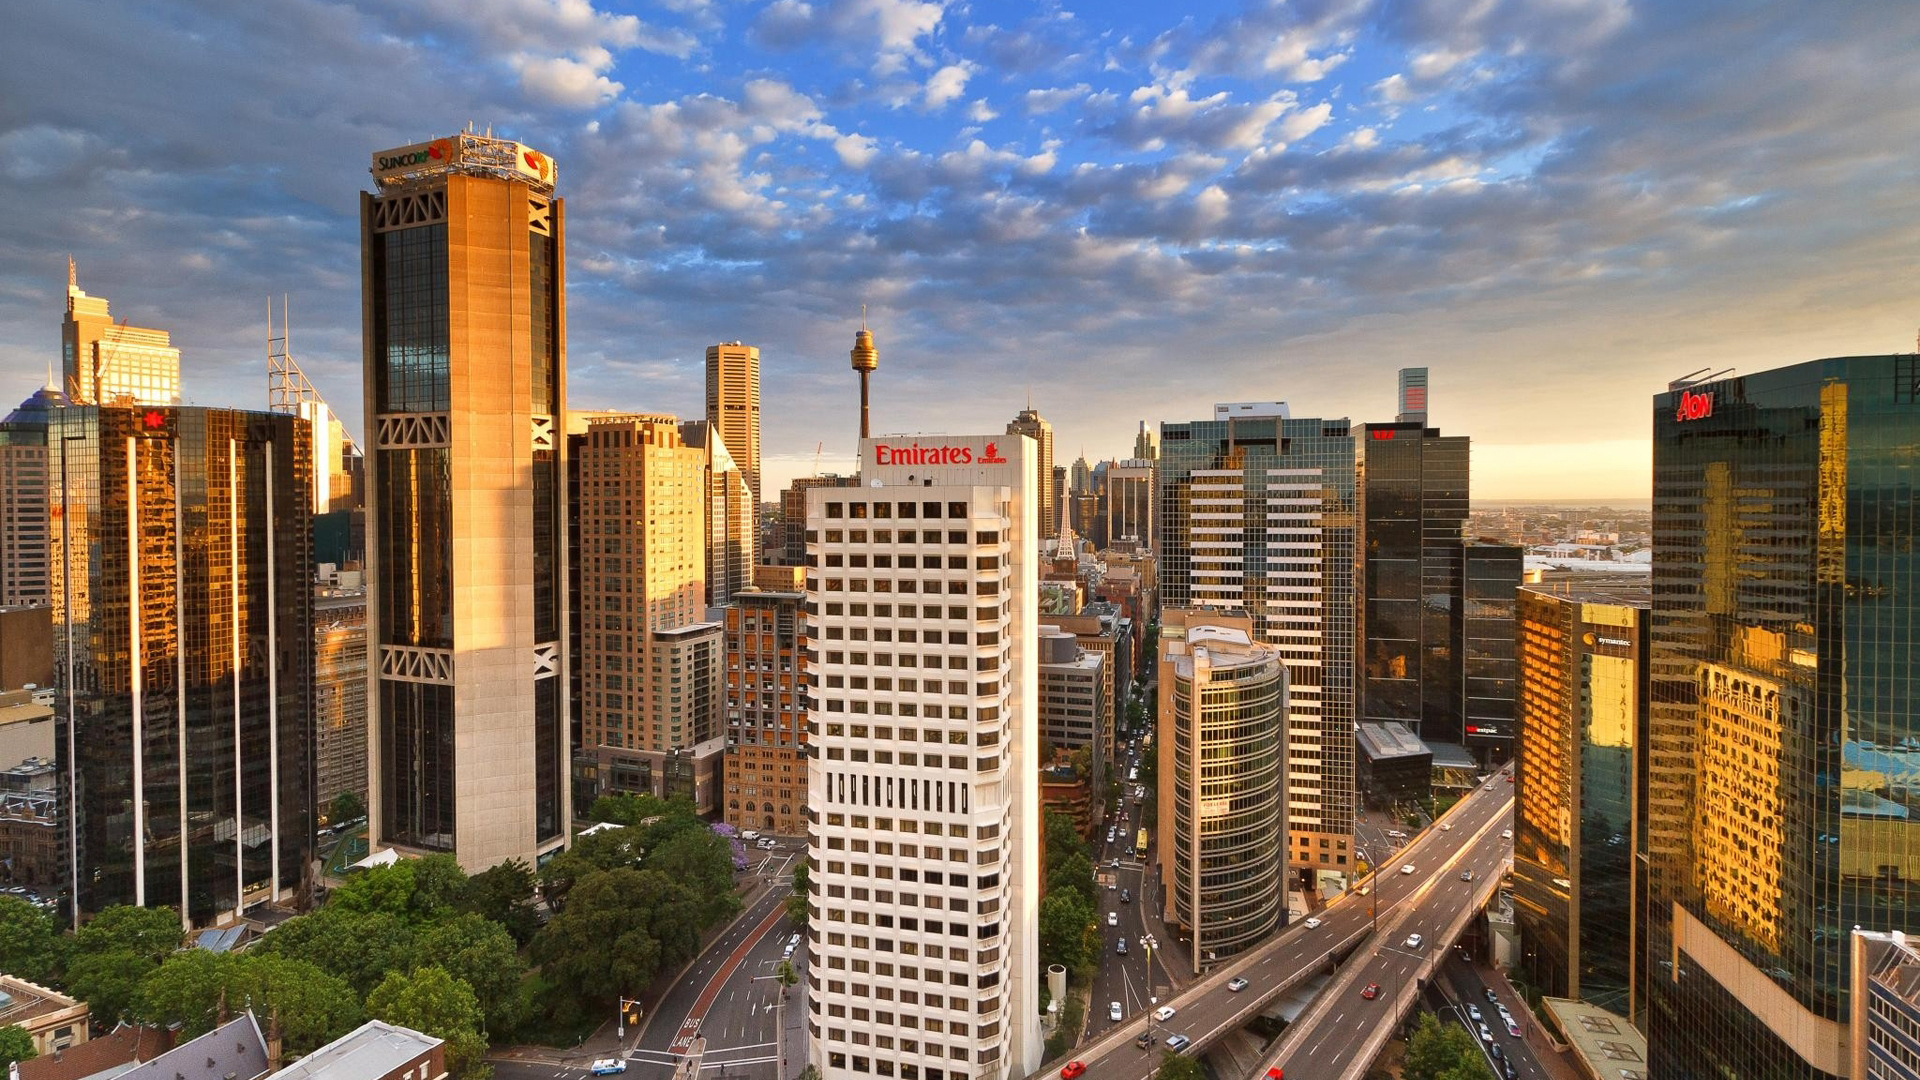 Sydney central business district. Virtual background to use on Zoom, Microsoft Teams, Skype, Google Meet, WebEx or any other compatible app.